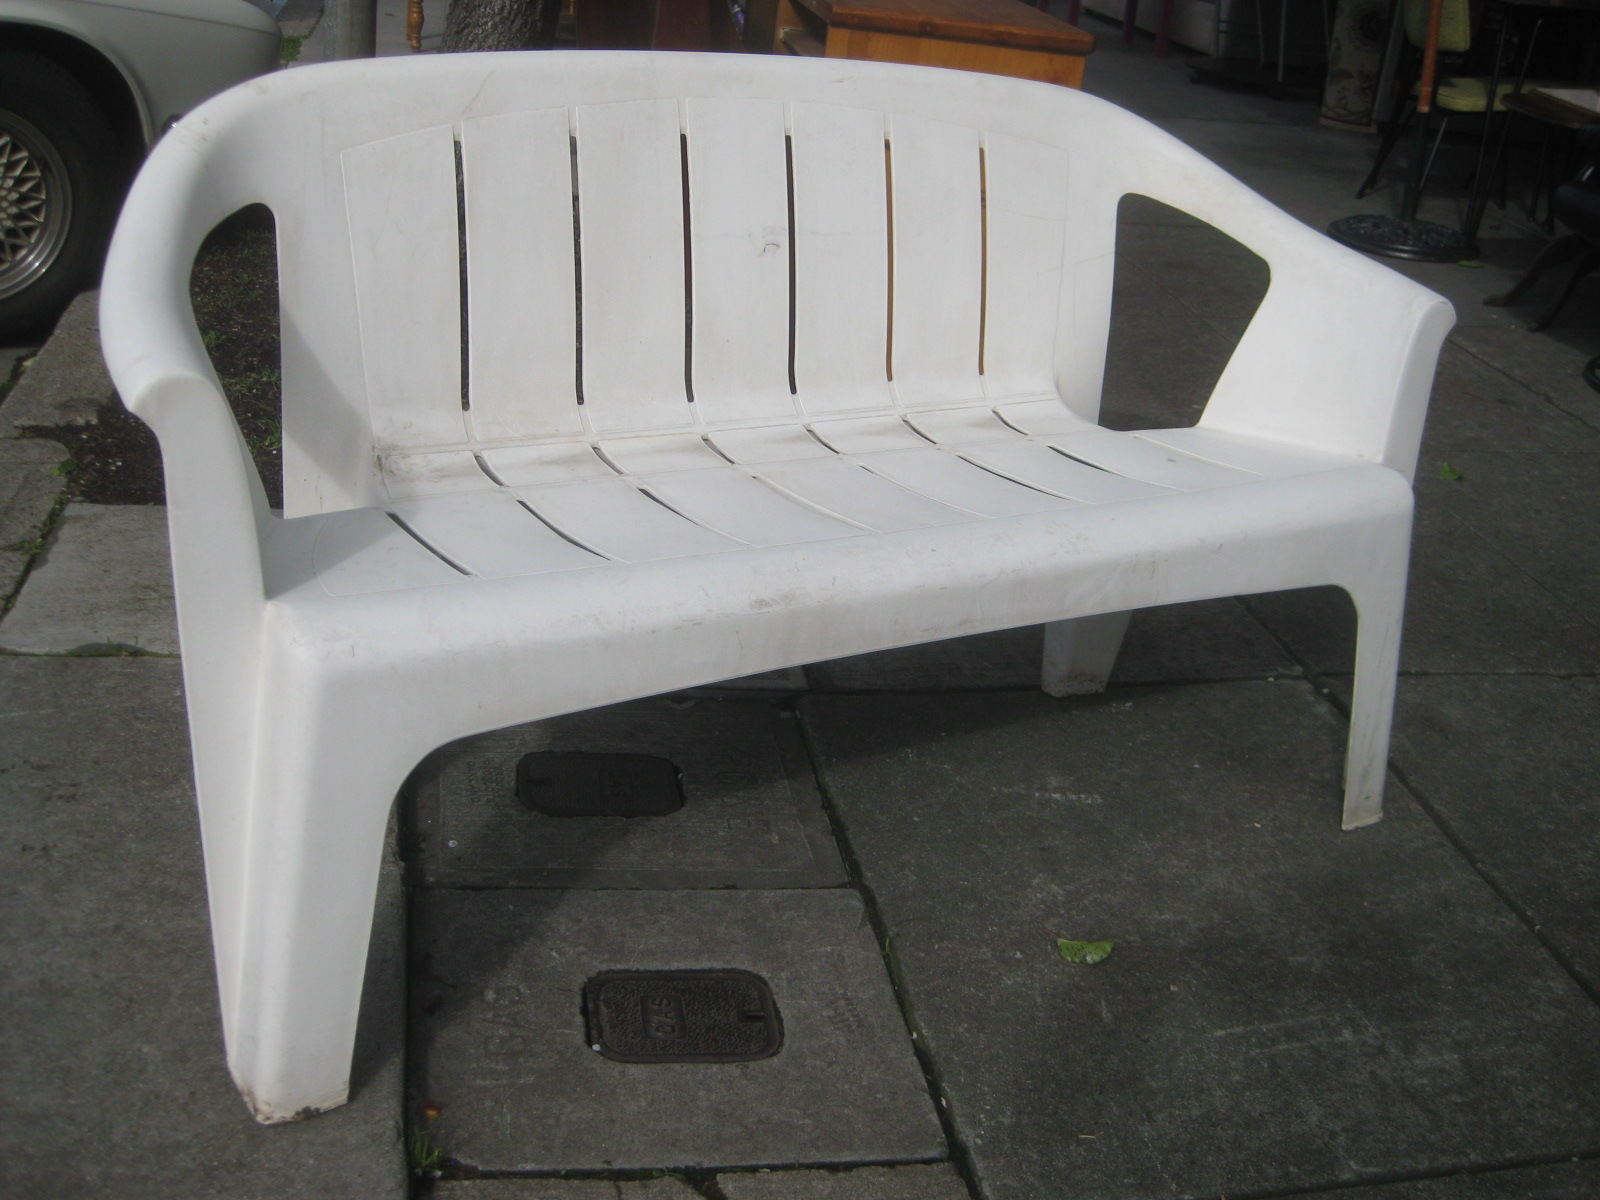 Uhuru furniture collectibles sold patio furniture Plastic for furniture